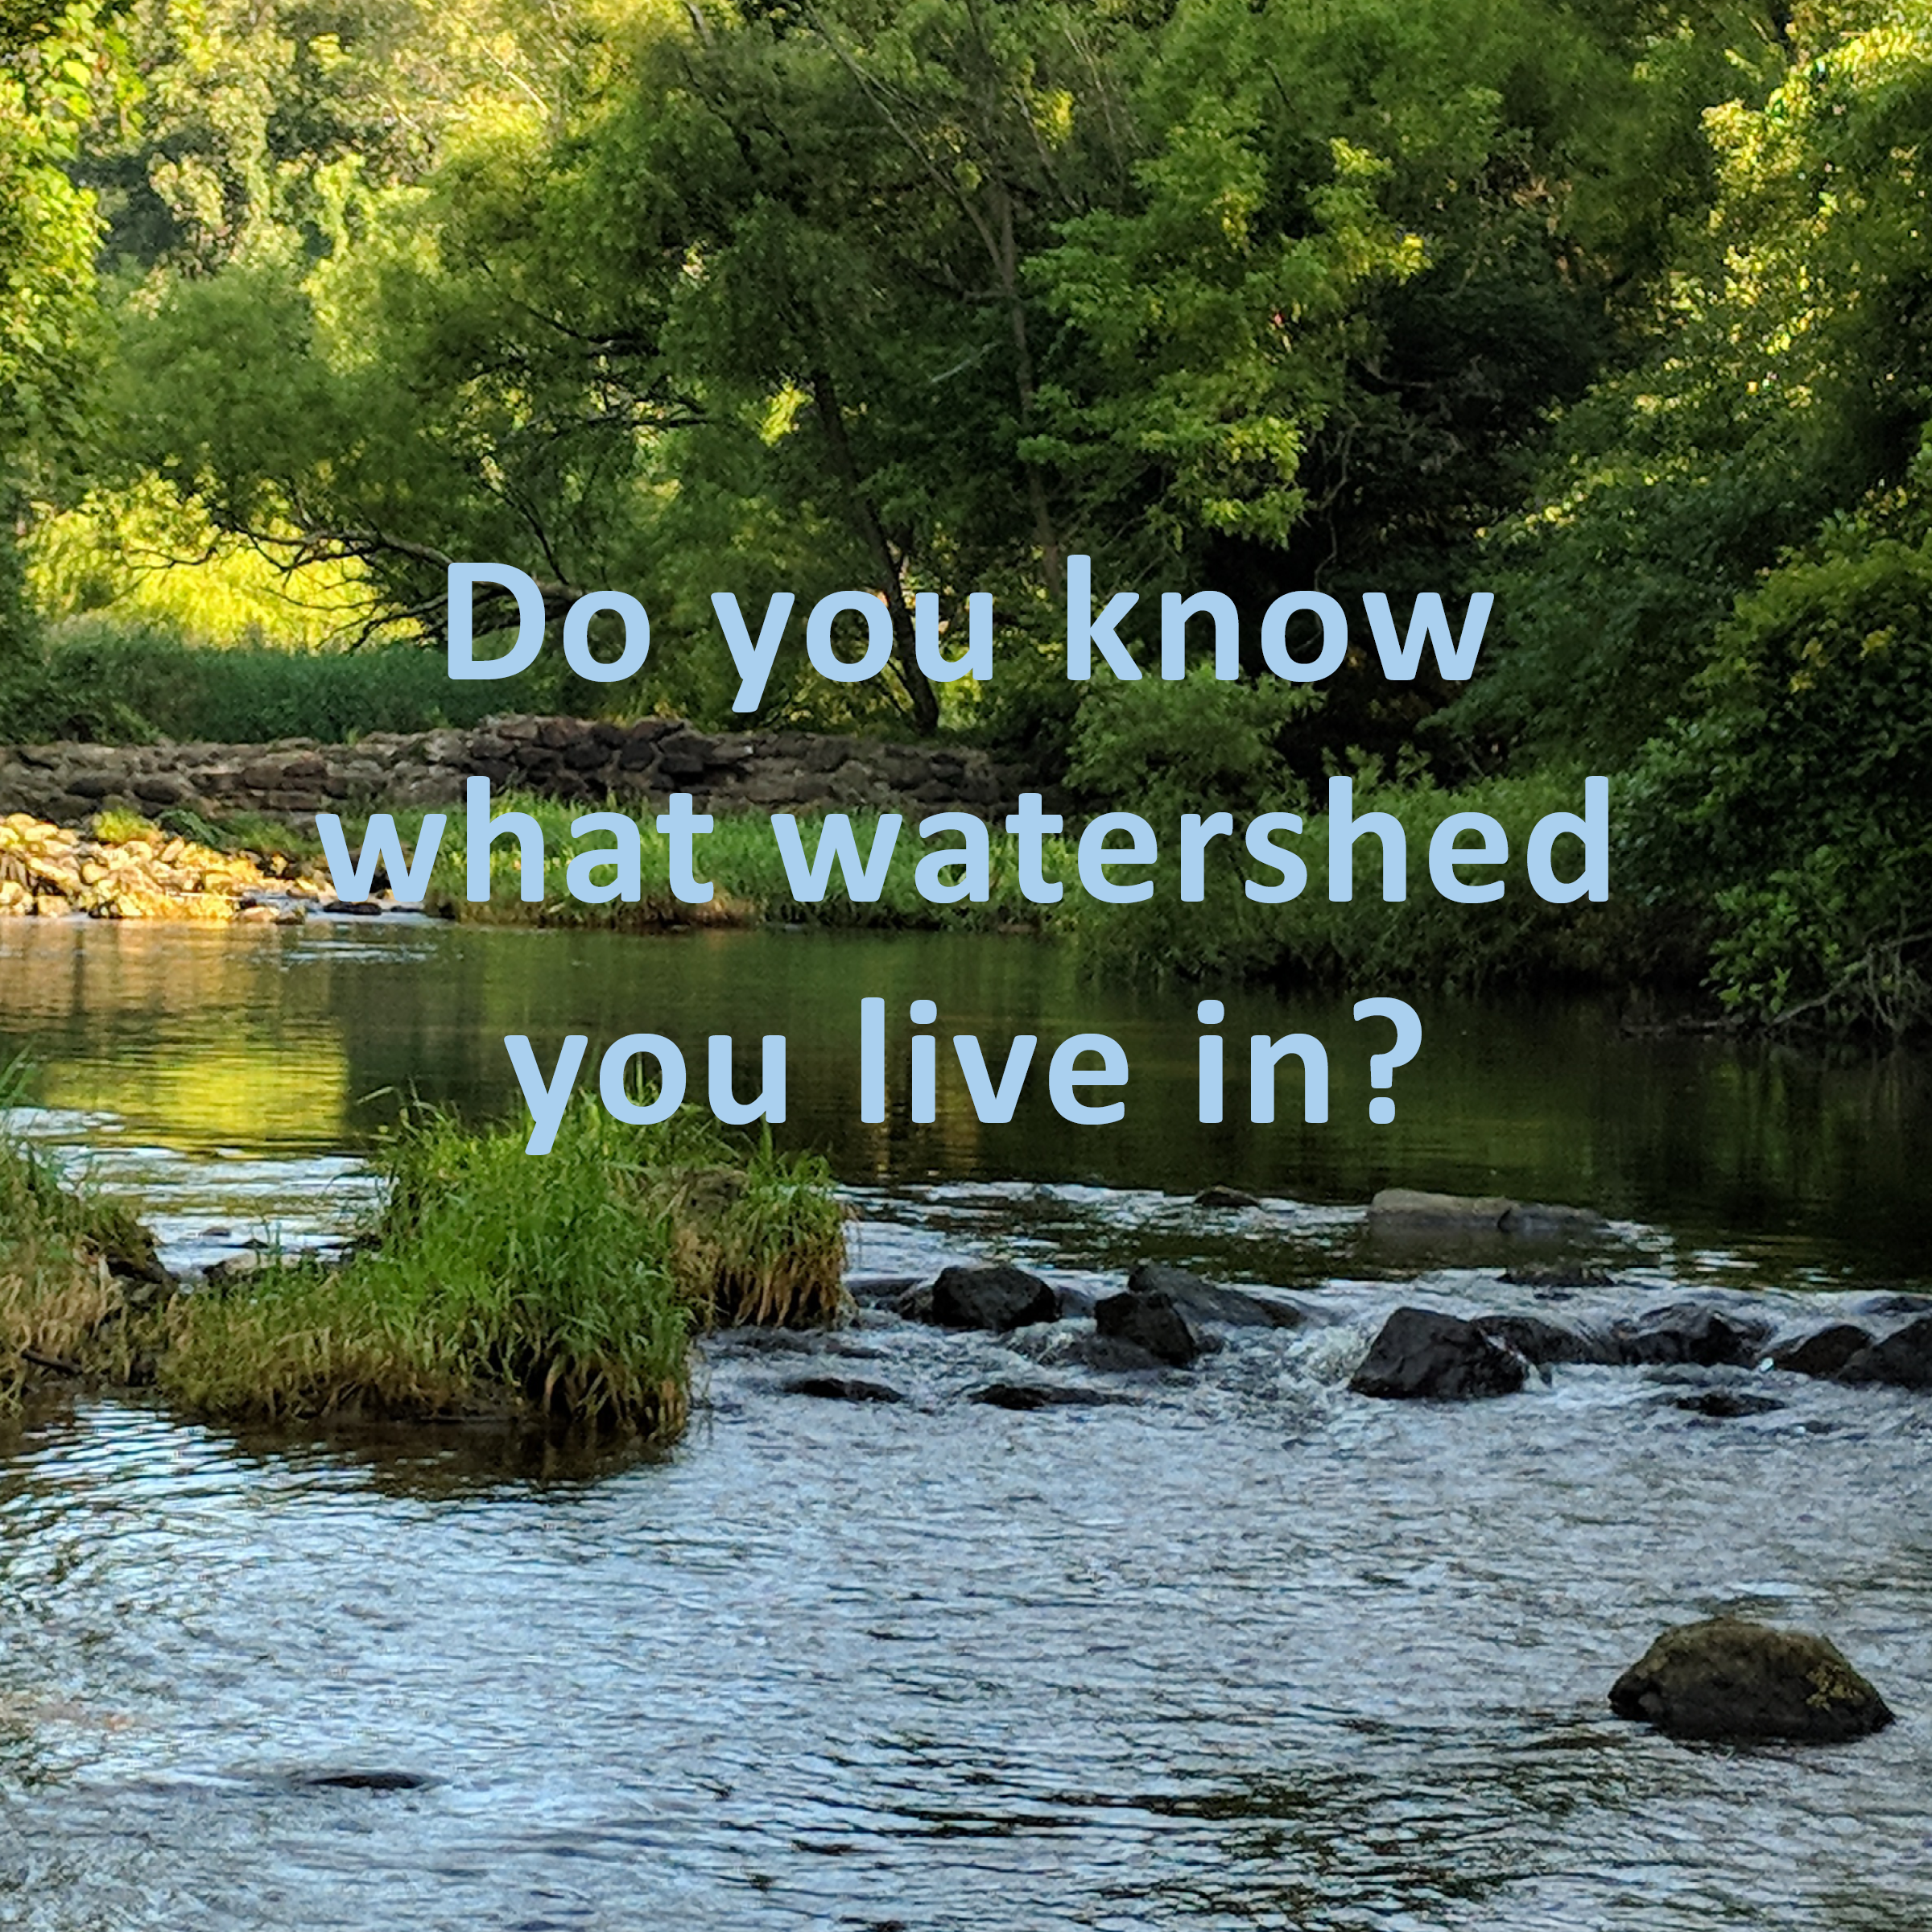 Do you know what watershed you live in